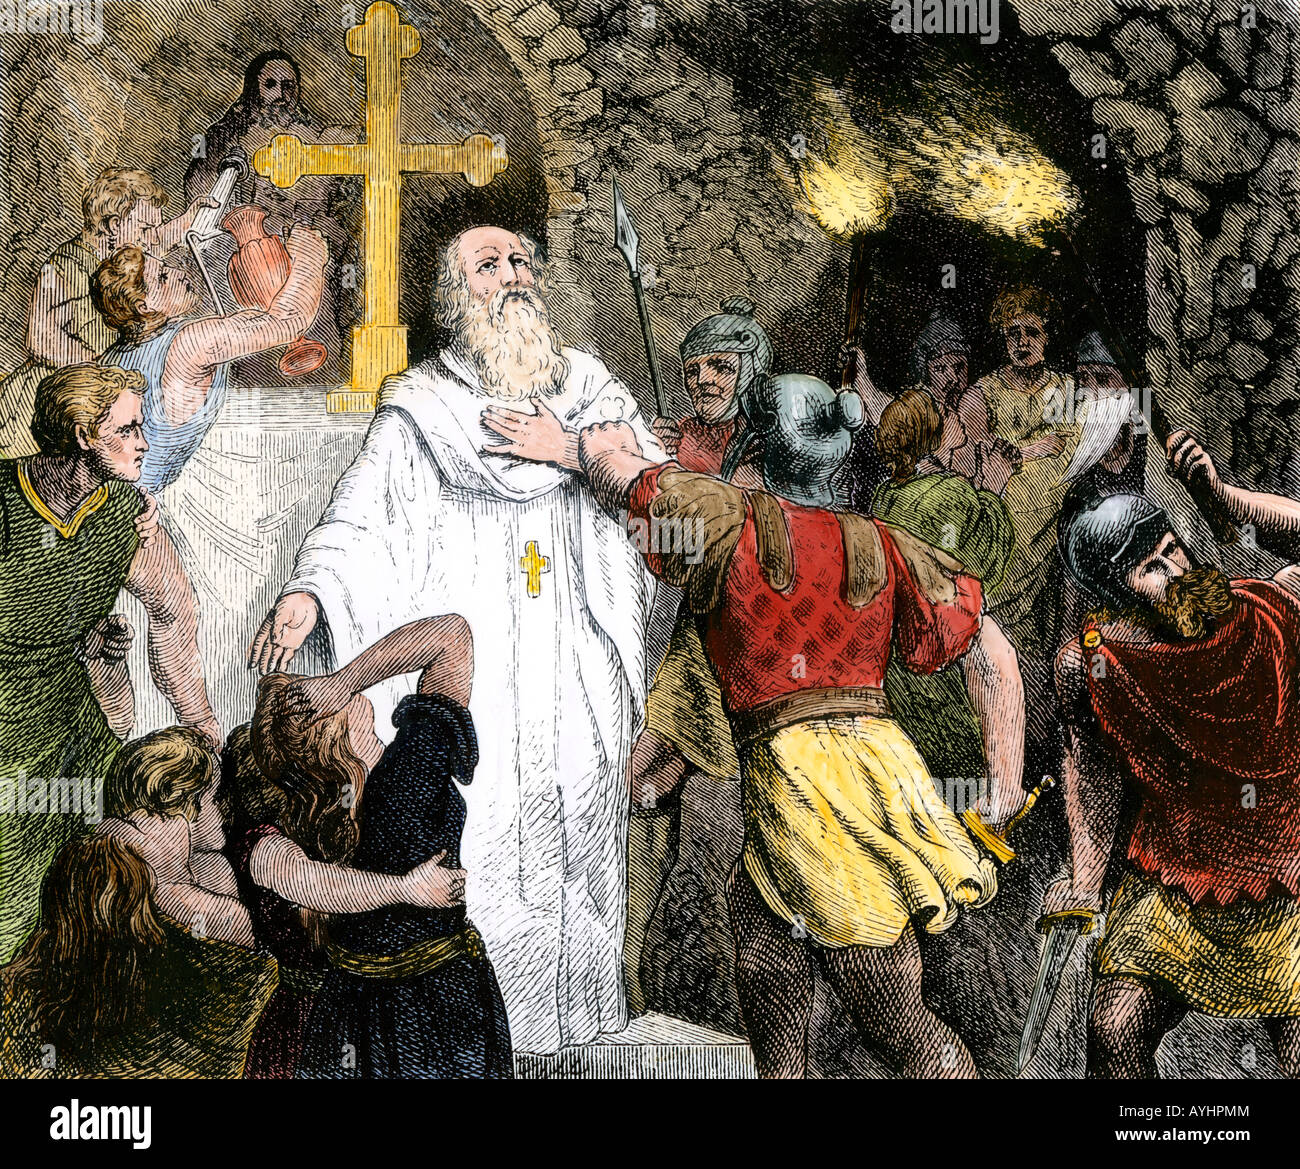 an essay on the catacombs and the persecutions of the christians The catacombs essay, research paper the catacombs and christian persecutions the catacombs are the ancient underground cemeteries used by the christians and the jewish people in rome.